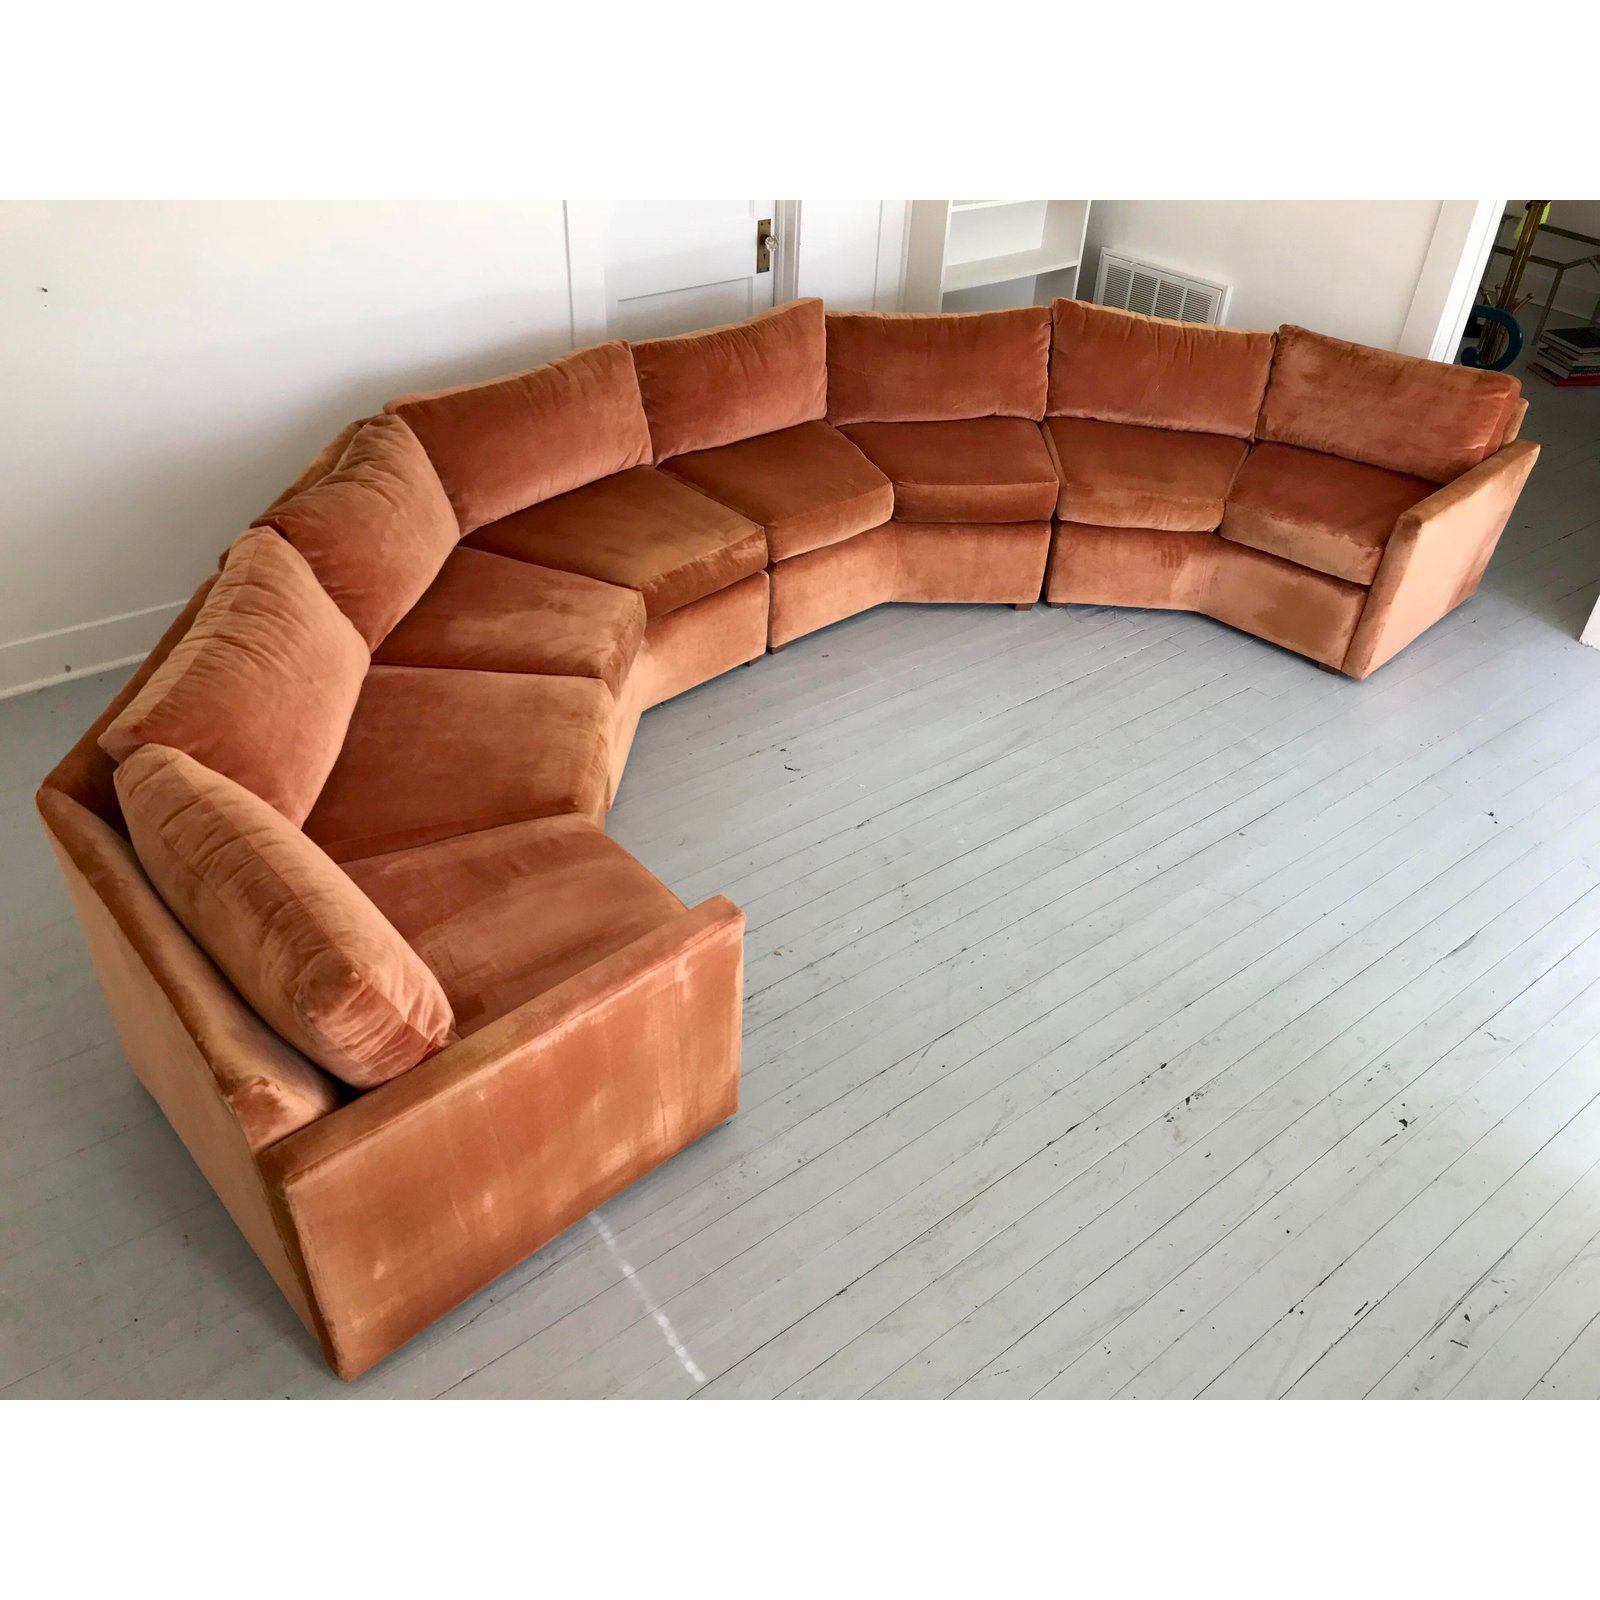 Awesome 1970S Mid Century Modern Bernhardt Flair Curved Hexagon Caraccident5 Cool Chair Designs And Ideas Caraccident5Info